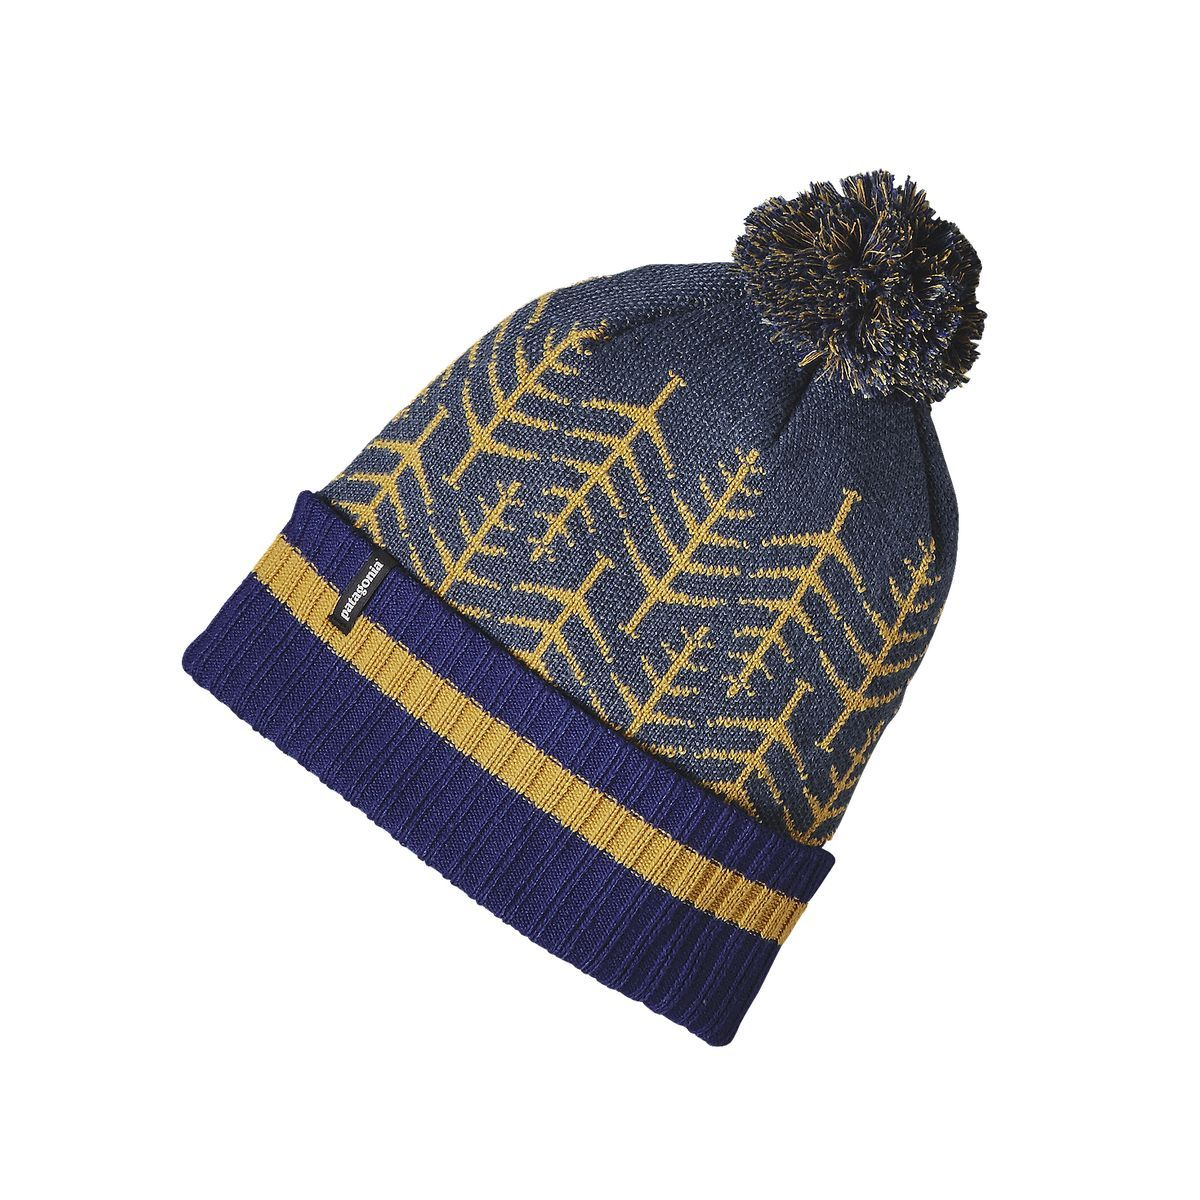 169aa1d6 Powder Town Beanie in 2019 | Products | Outdoor outfit, Hats, Winter ...